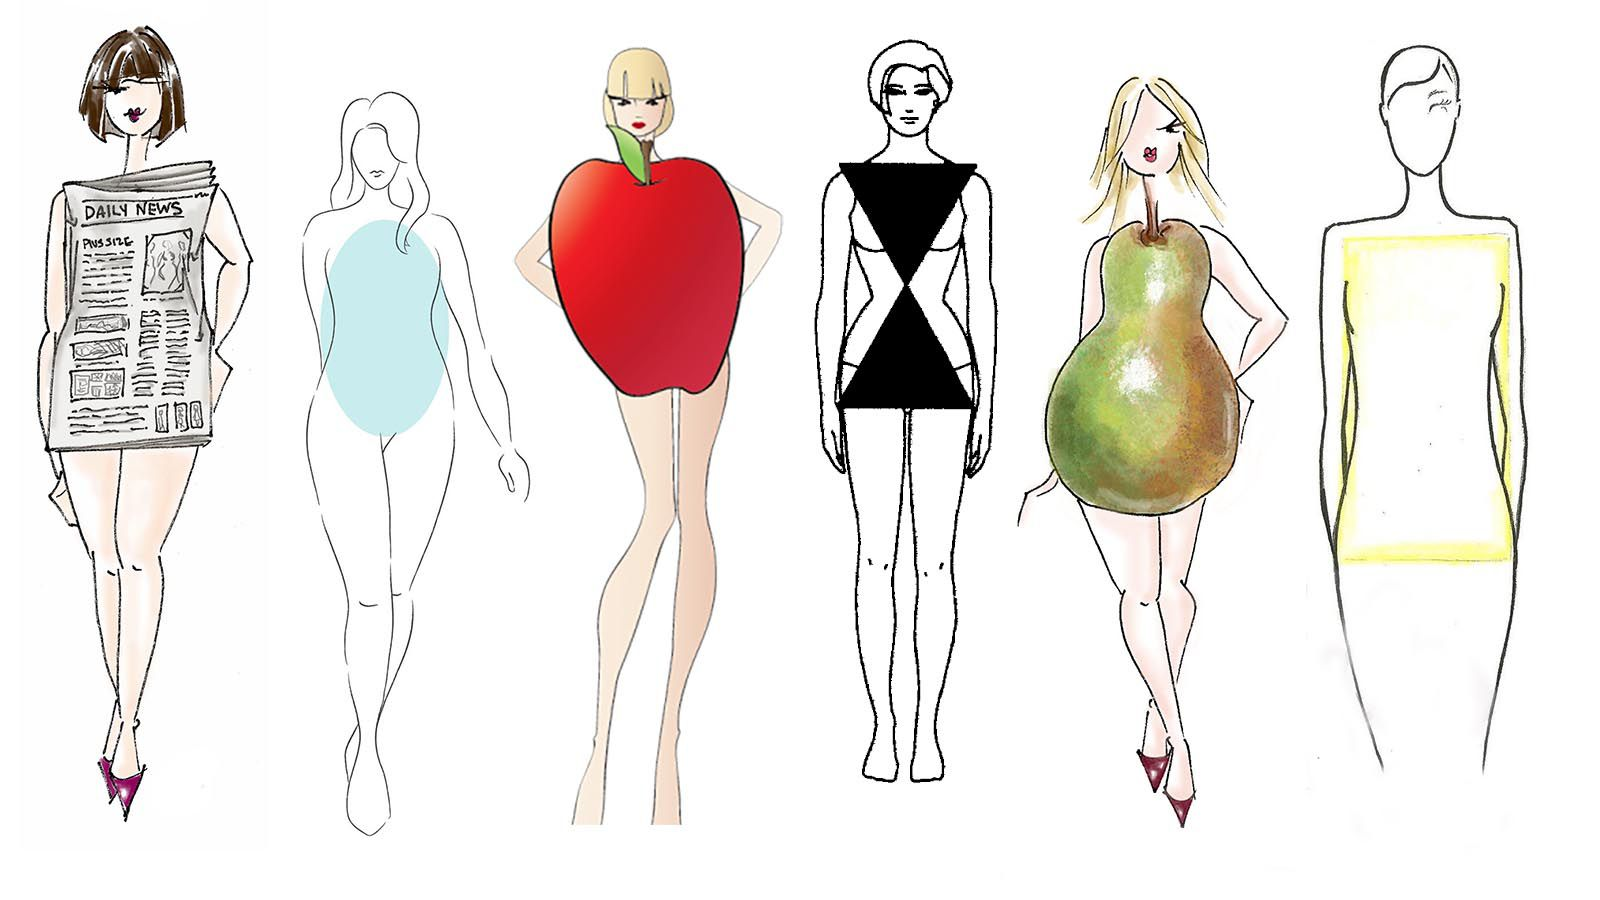 How To Select A Uniform For Your Body Shape